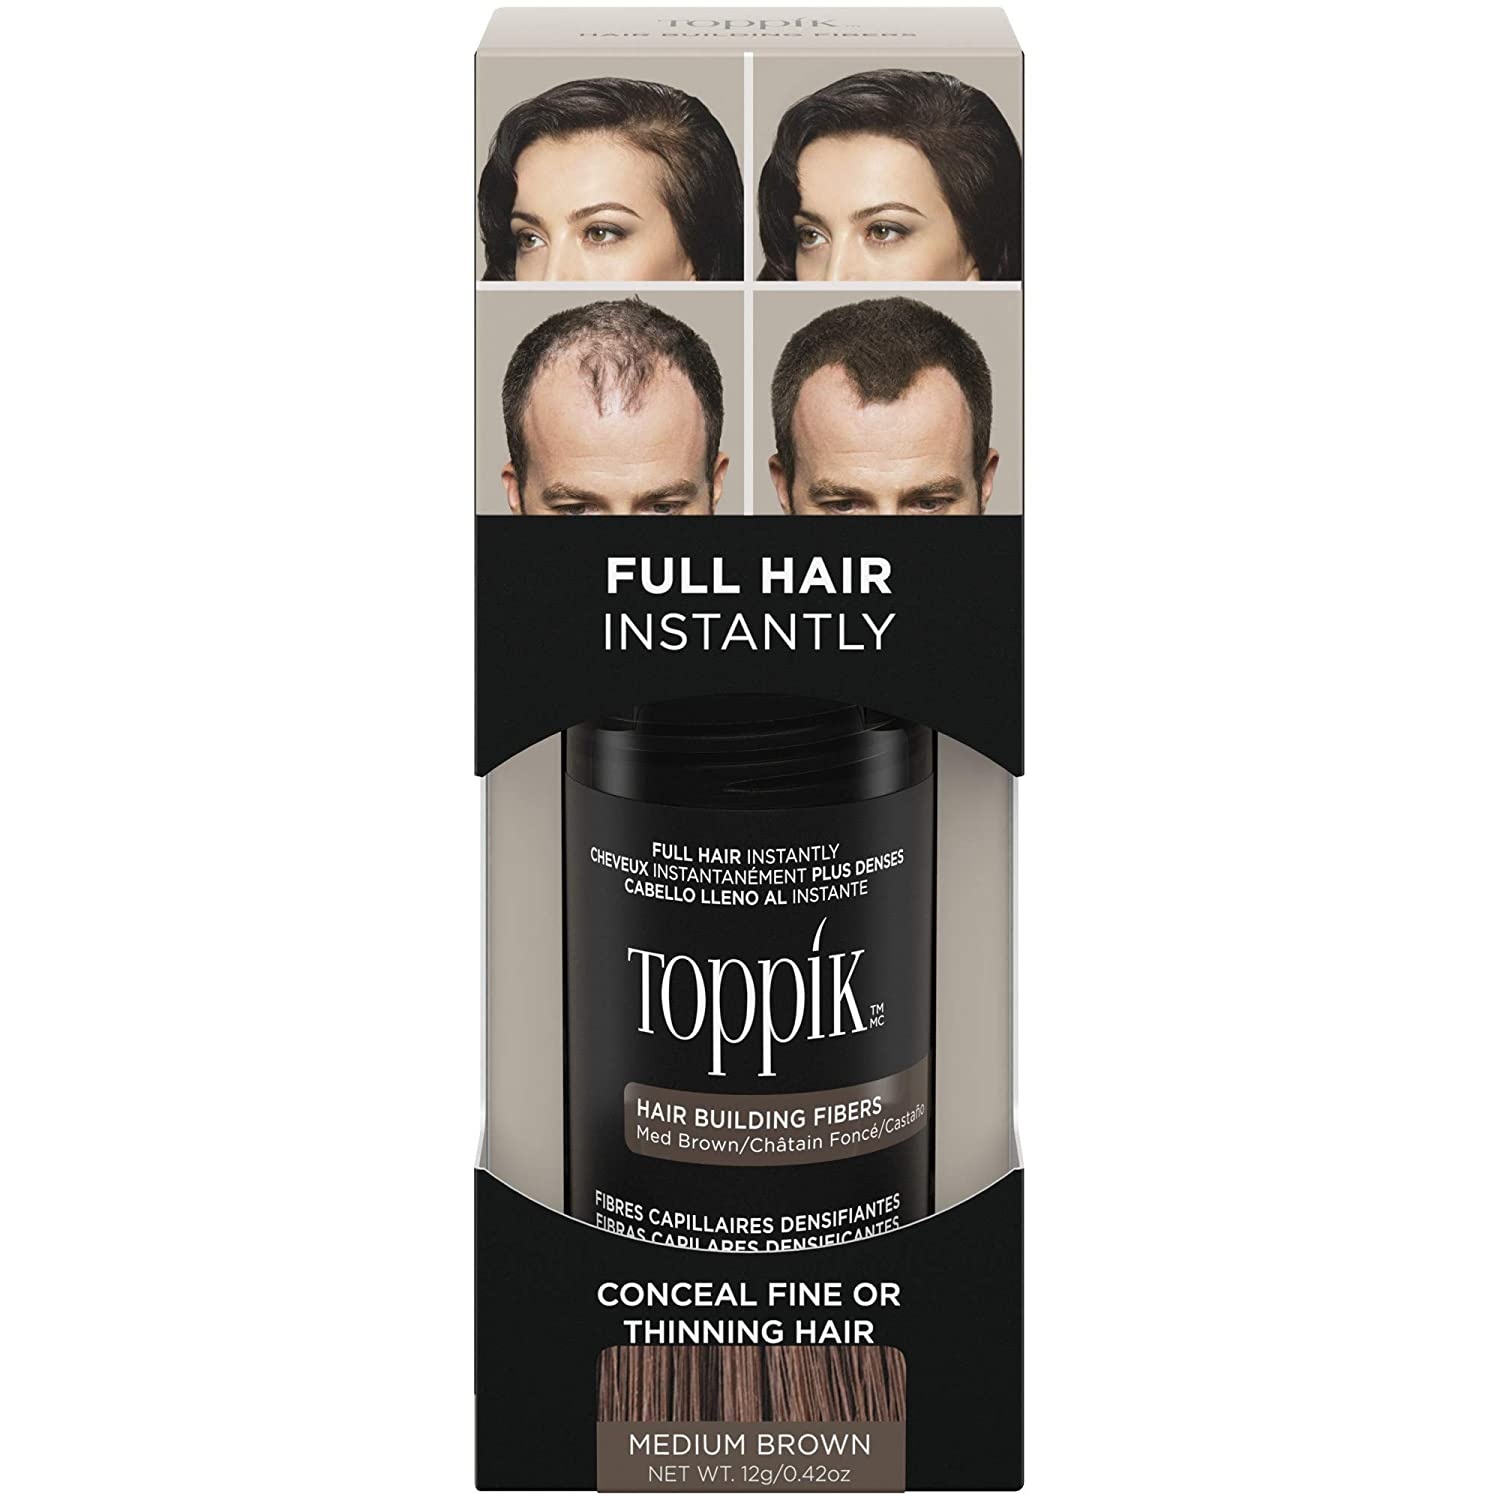 Toppik Hair Building Natural Keratin Fibers for Men & Women